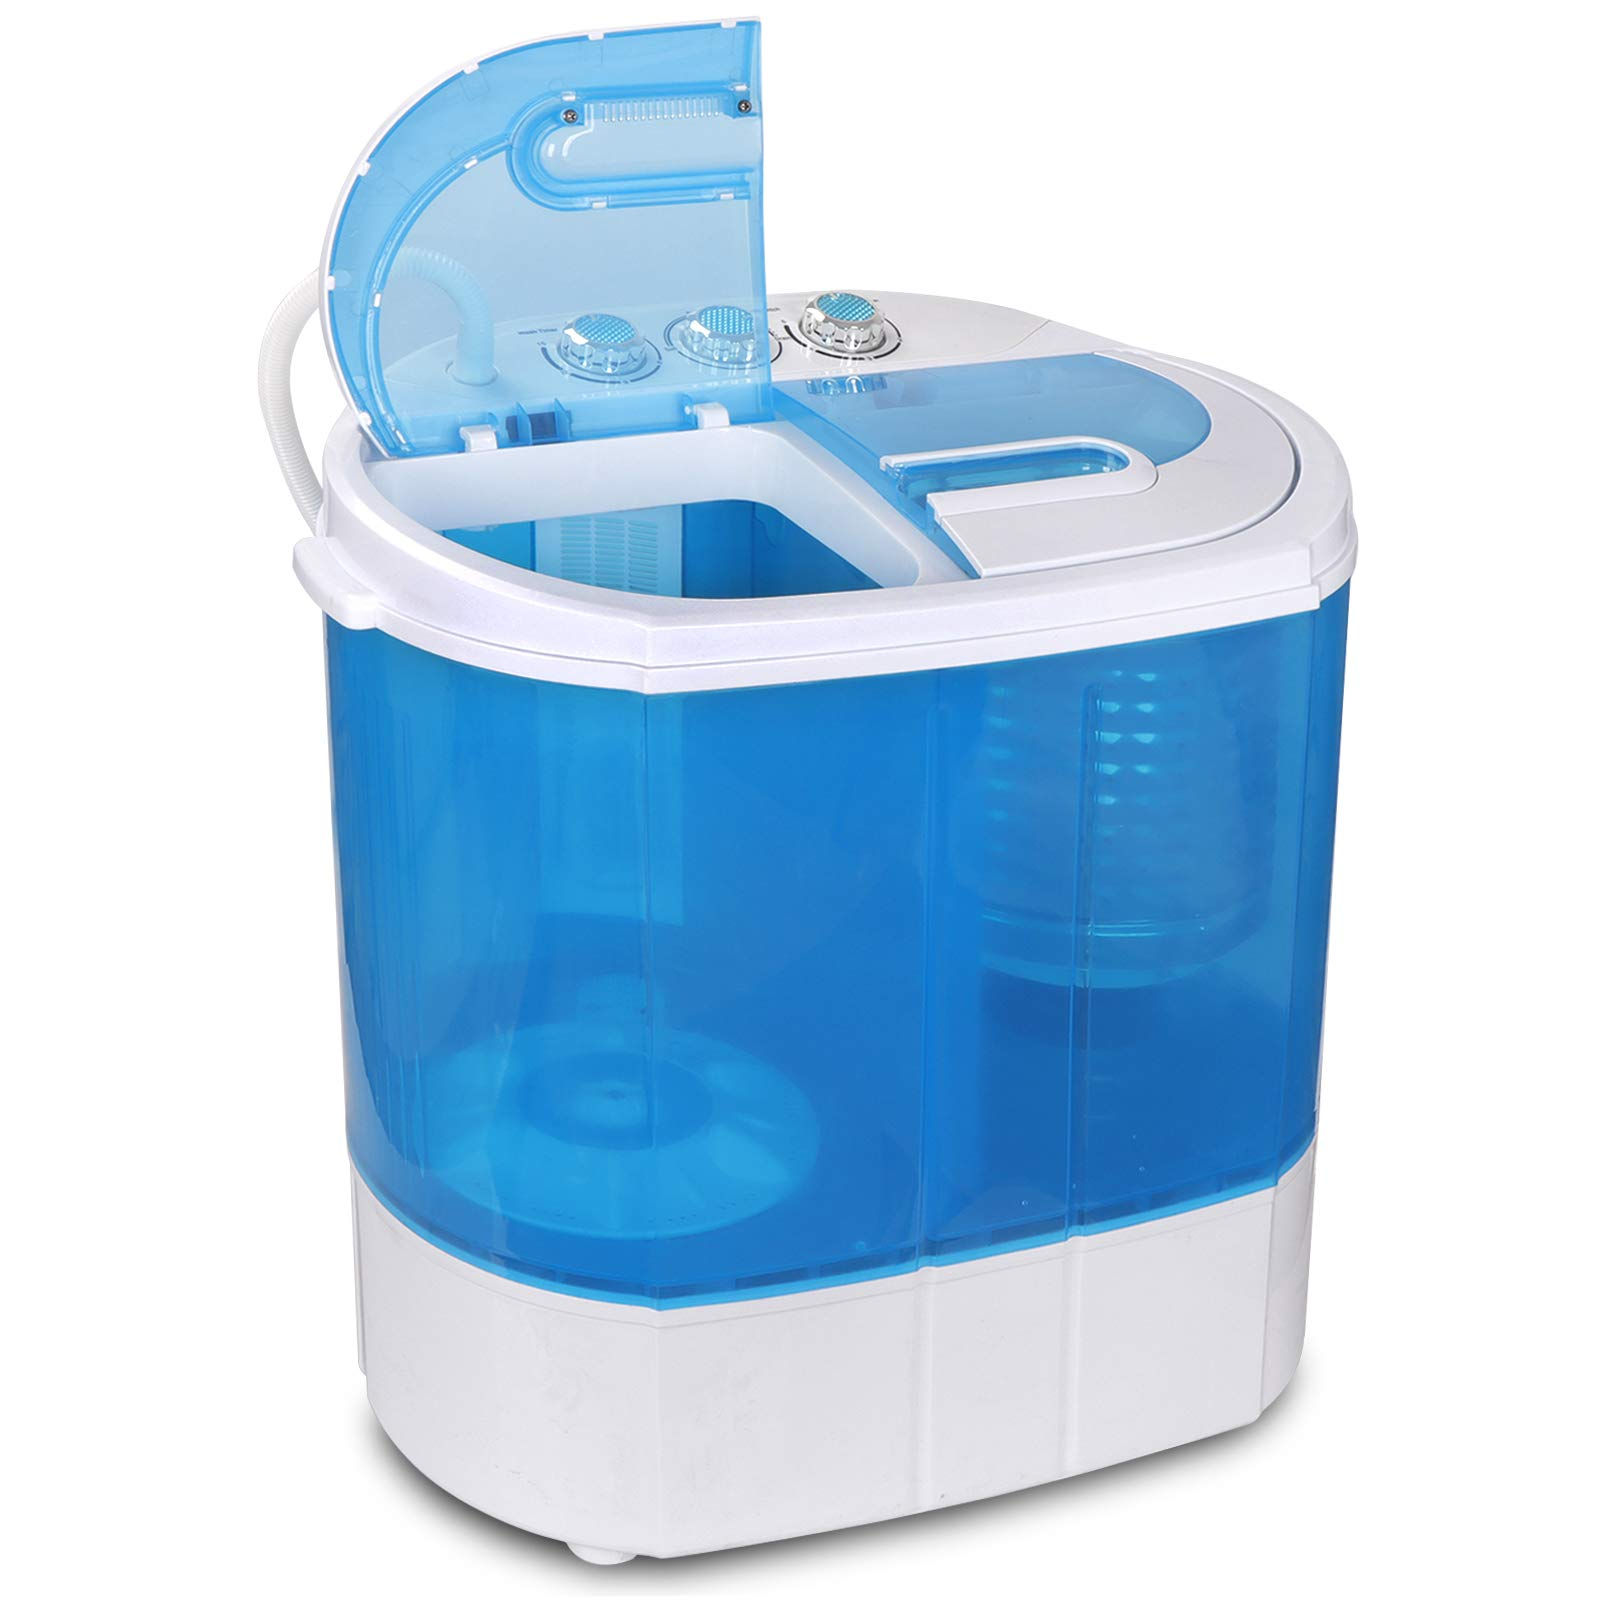 ZENY Portable Mini Compact Twin Tub Washing Machine Spain Spinner Apartment Laundry Washer Machine